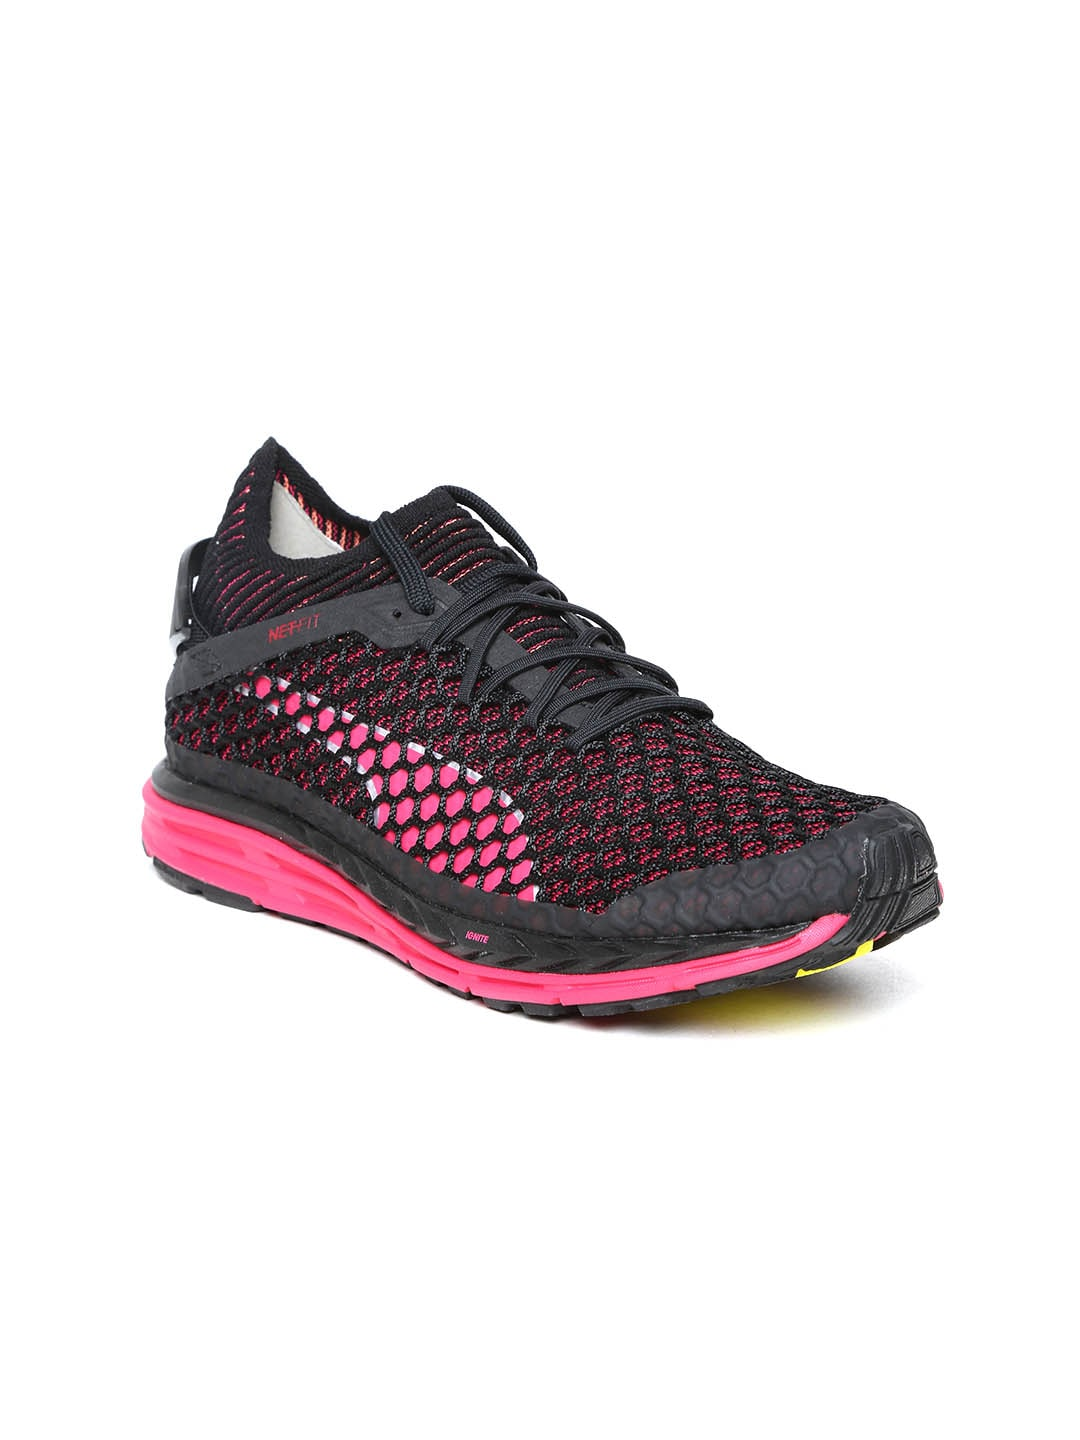 e759c69f0bb3 Puma Shoes - Buy Puma Shoes for Men   Women Online in India